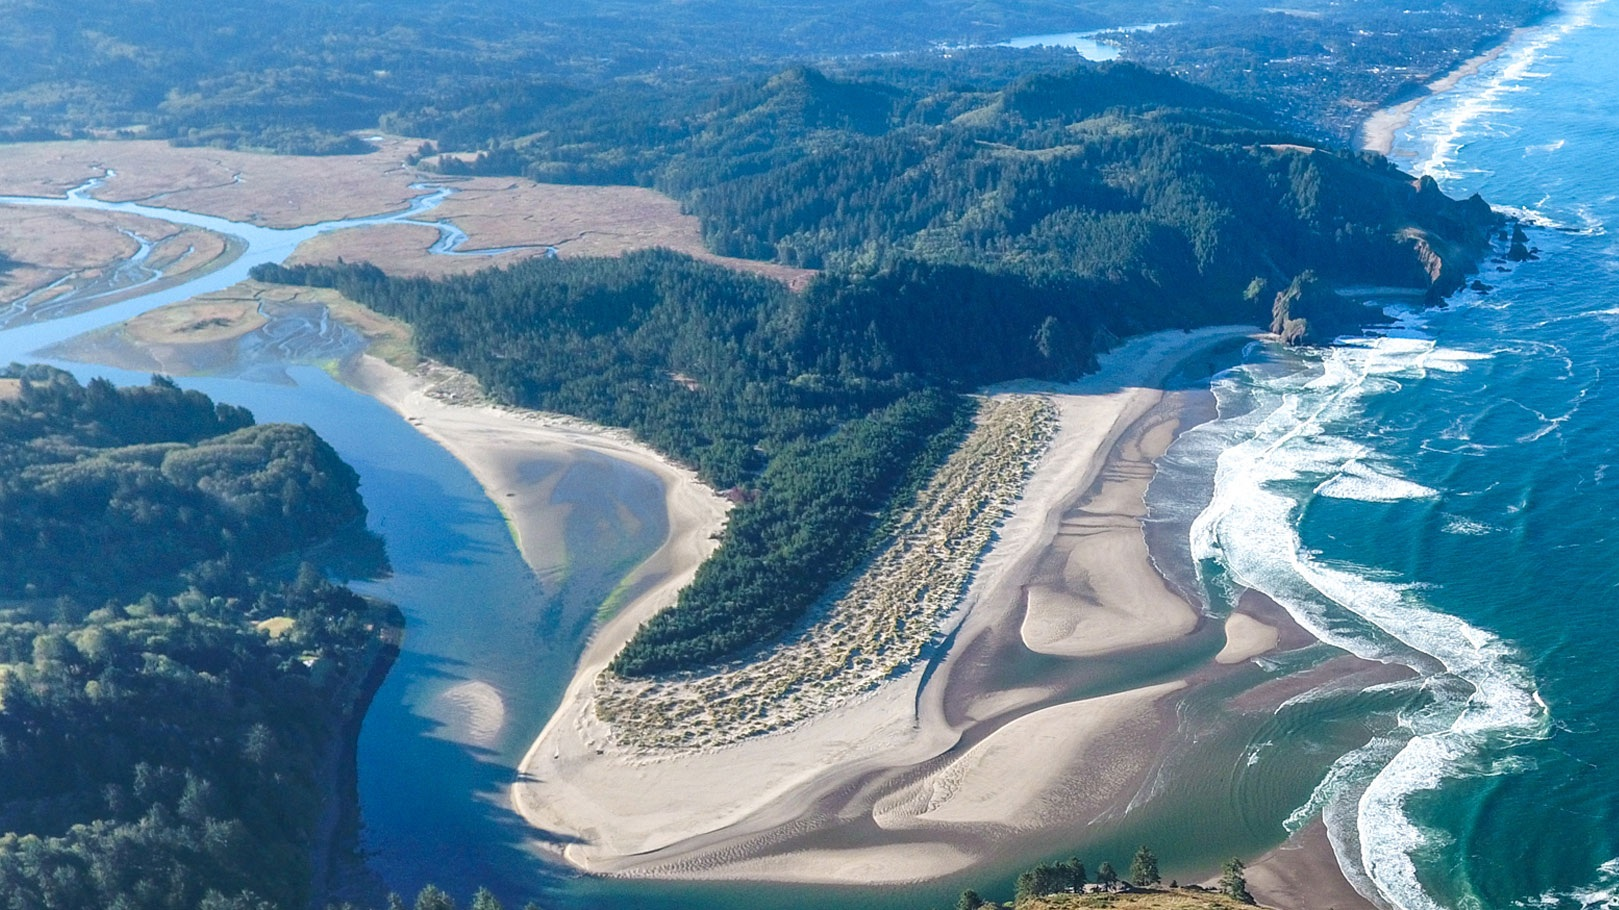 welcome to the UNESCO biosphere reserve at cascade head